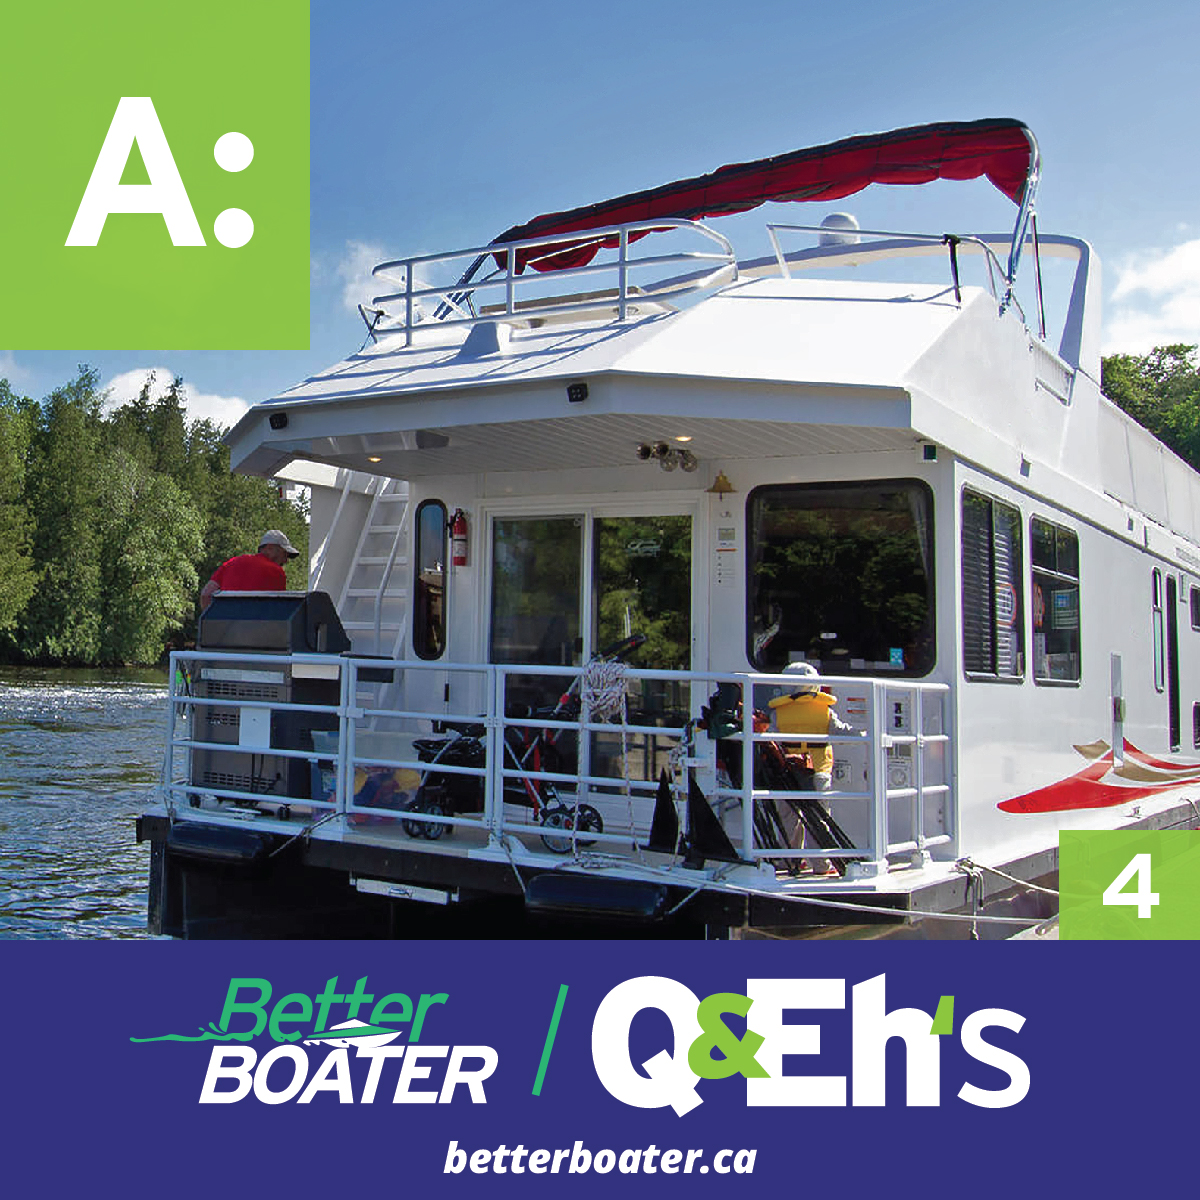 https://betterboater.ca/Q&Eh:%20Drinking%20Dock